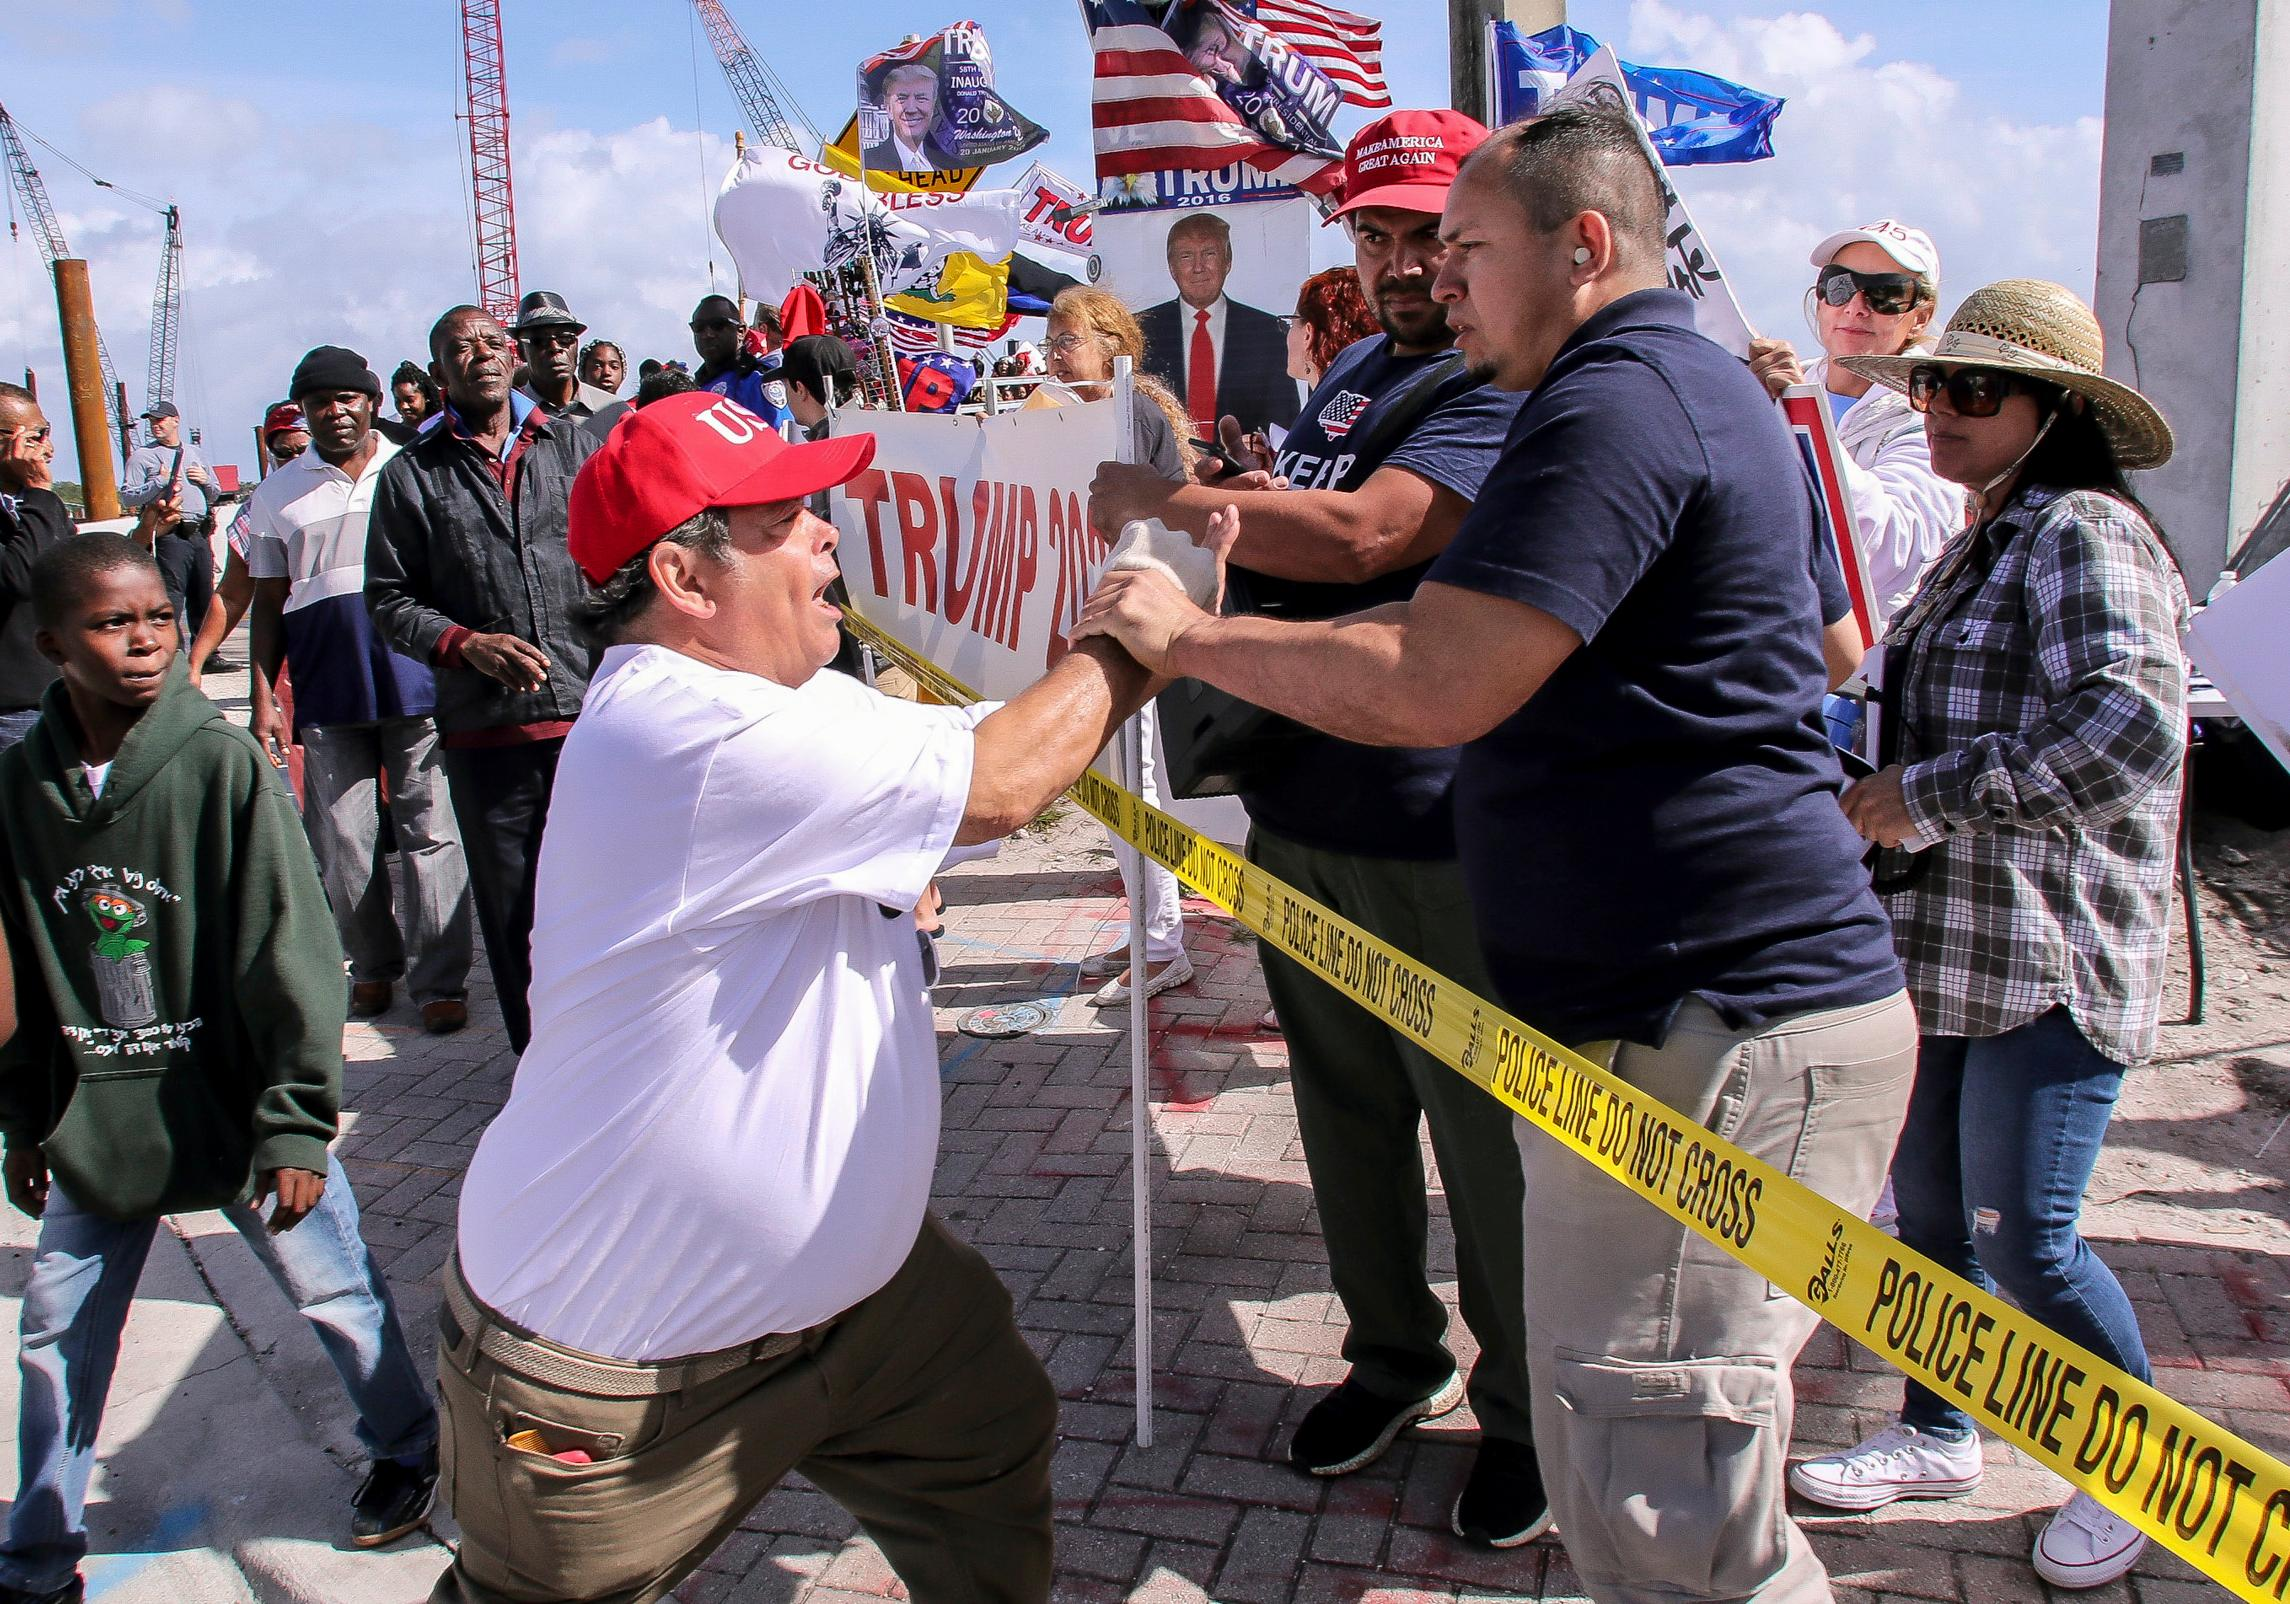 A President Donald Trump supporter, left, confronts a fellow Trump supporter, right, who was speaking on a bullhorn, to stop being disrespectful and spewing hate Monday, Jan. 15, 2018, as local Haitians march in protest of Trump in West Palm Beach, Fla. Trump is defending himself anew against accusations that he is racist, this time after recent disparaging comments about Haiti and African nations. (Damon Higgins/Palm Beach Post via AP)